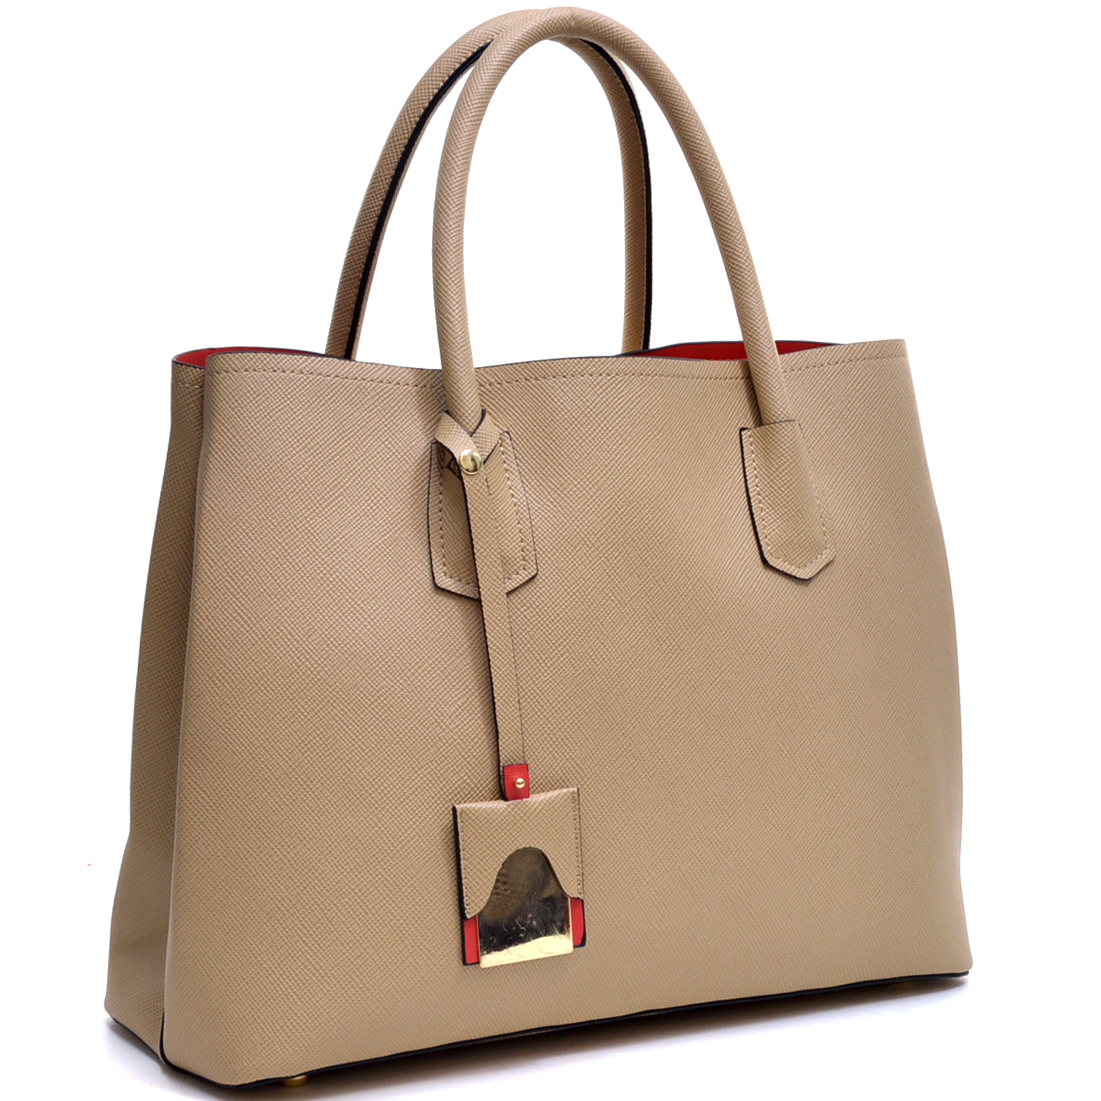 Colorblocked Faux Leather Tote Bag with Removable ID Tag